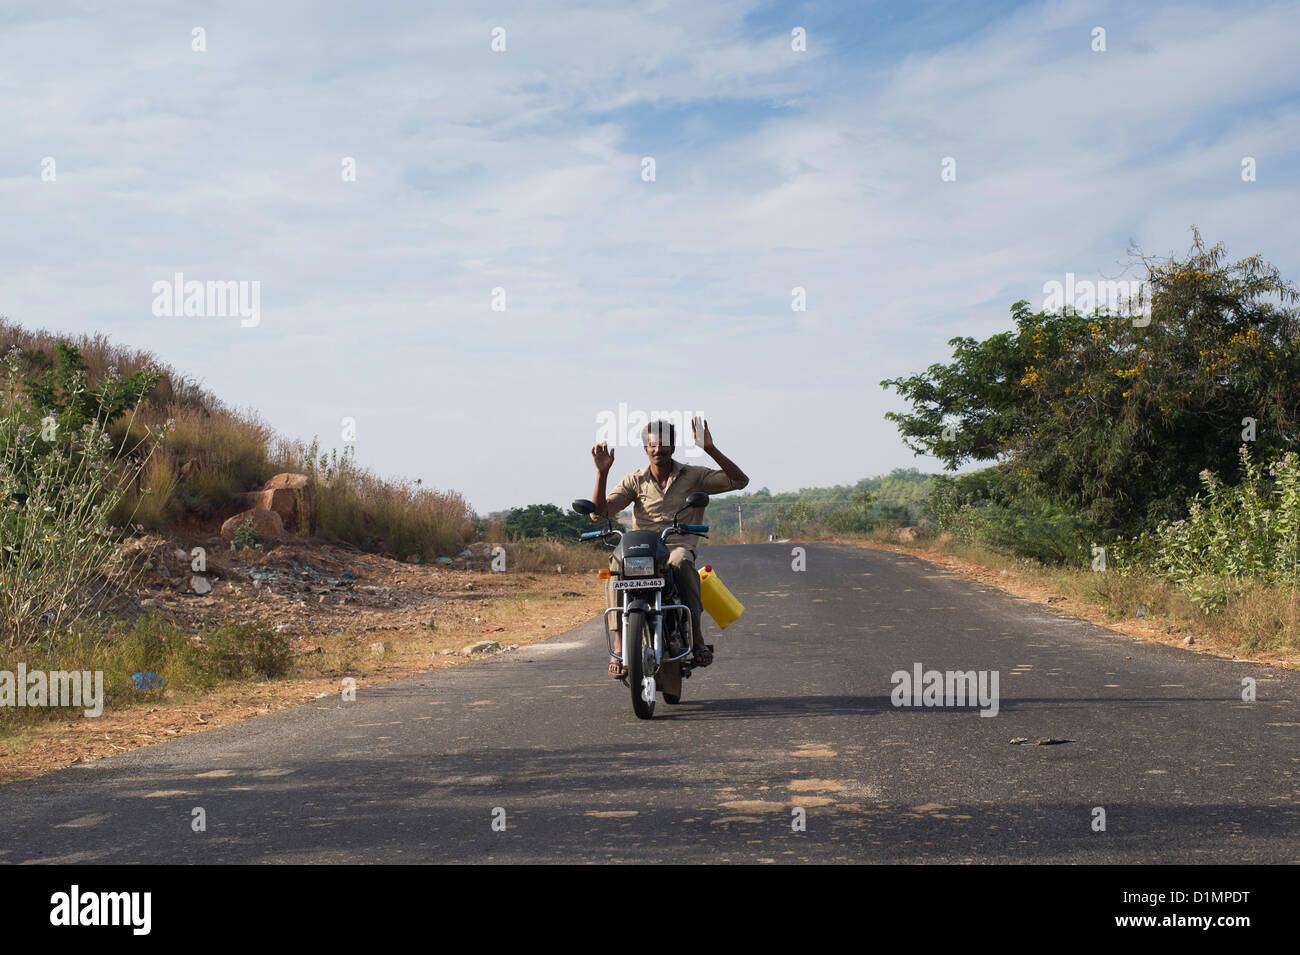 Indian man driving his motorcycle with no hands on the handlebars. India - Stock Image